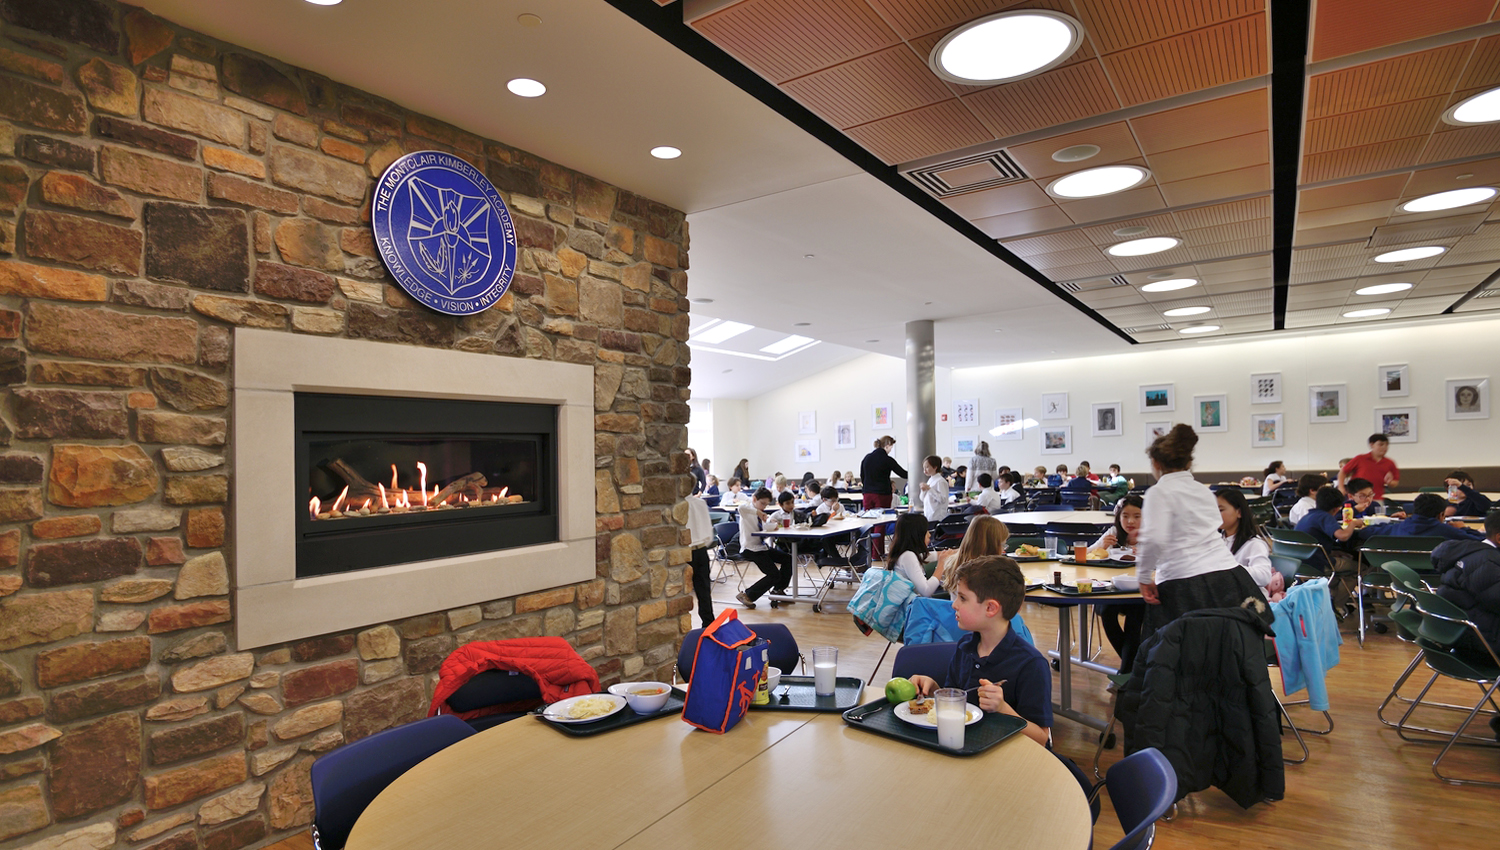 Montclair Kimberley Academy Middle School Dining Hall